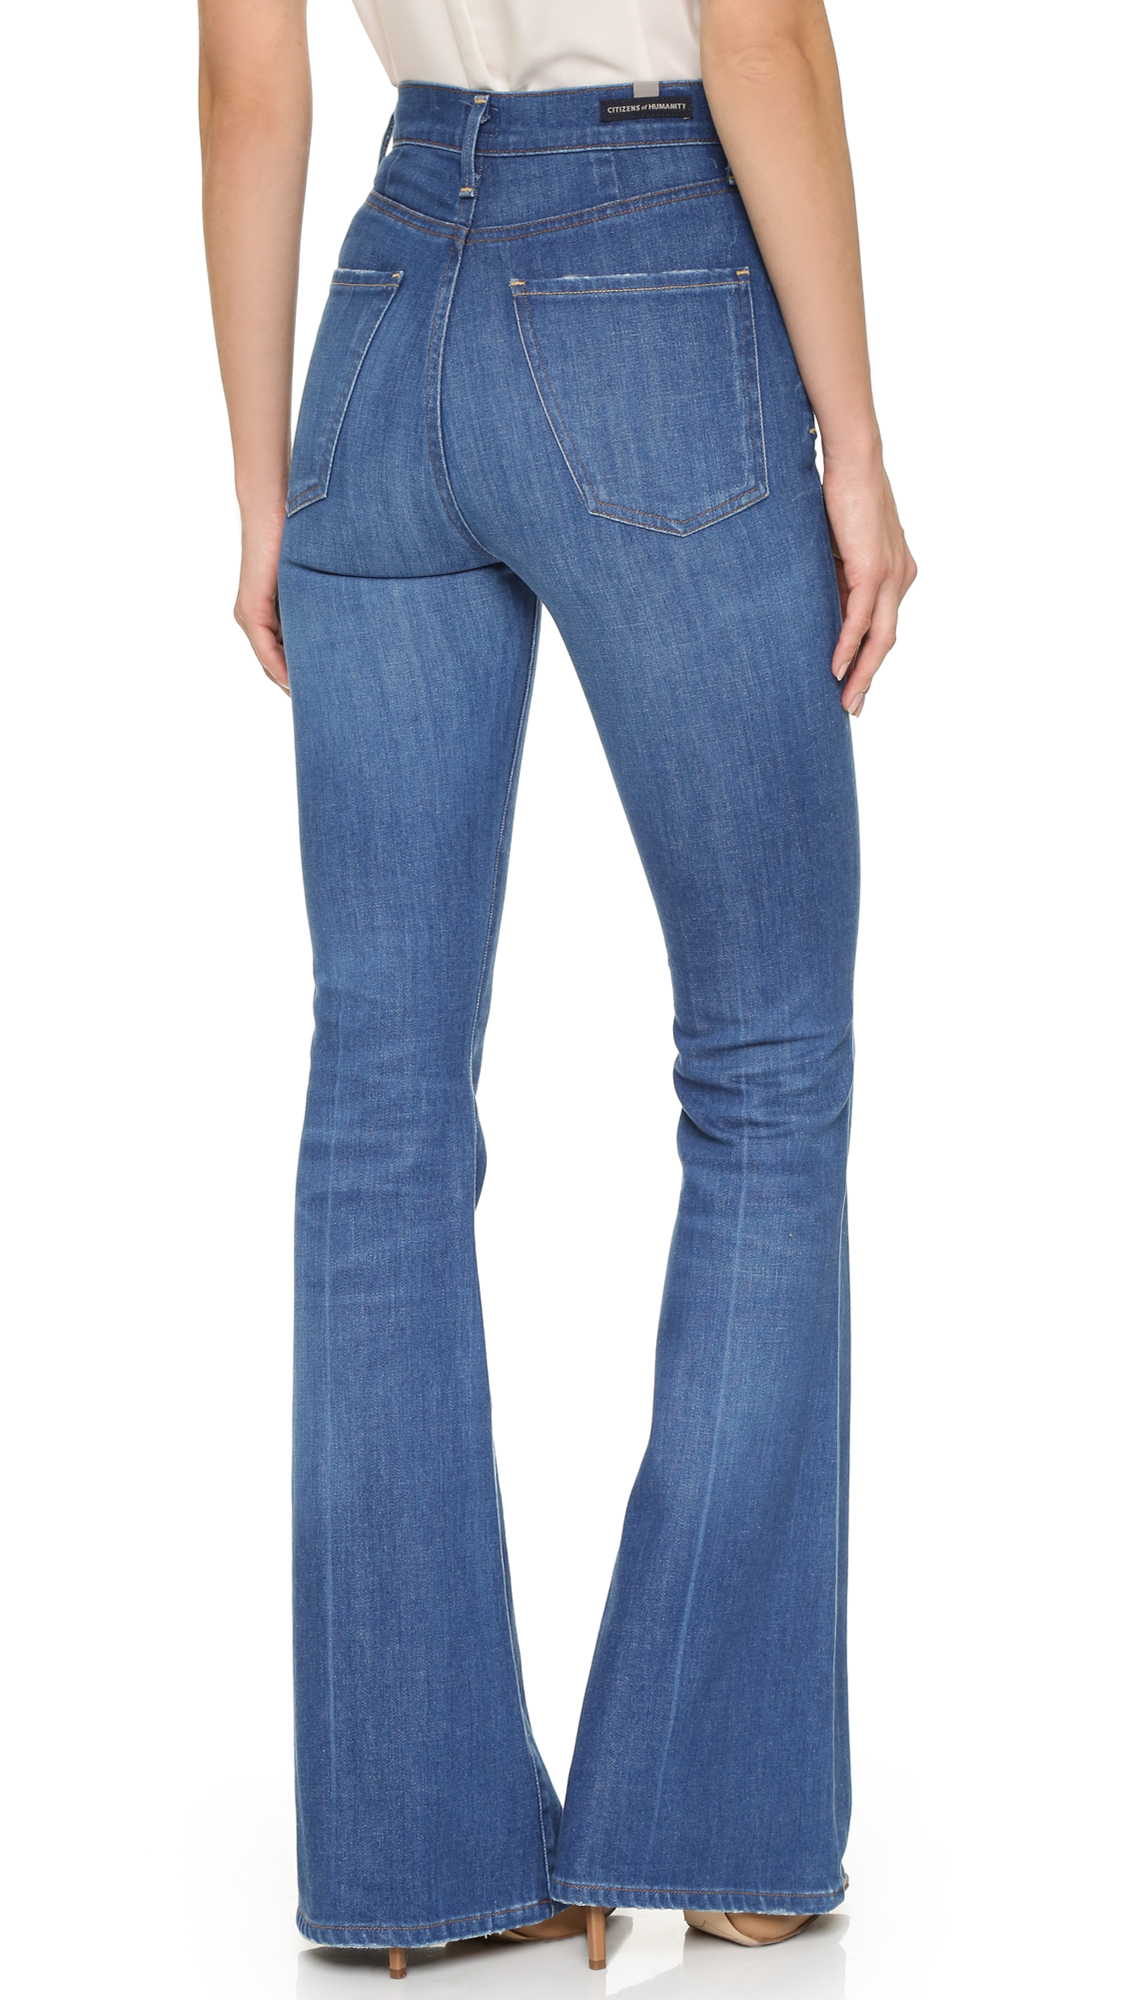 Citizens of humanity Cherie High Rise Flare Jeans in Blue | Lyst